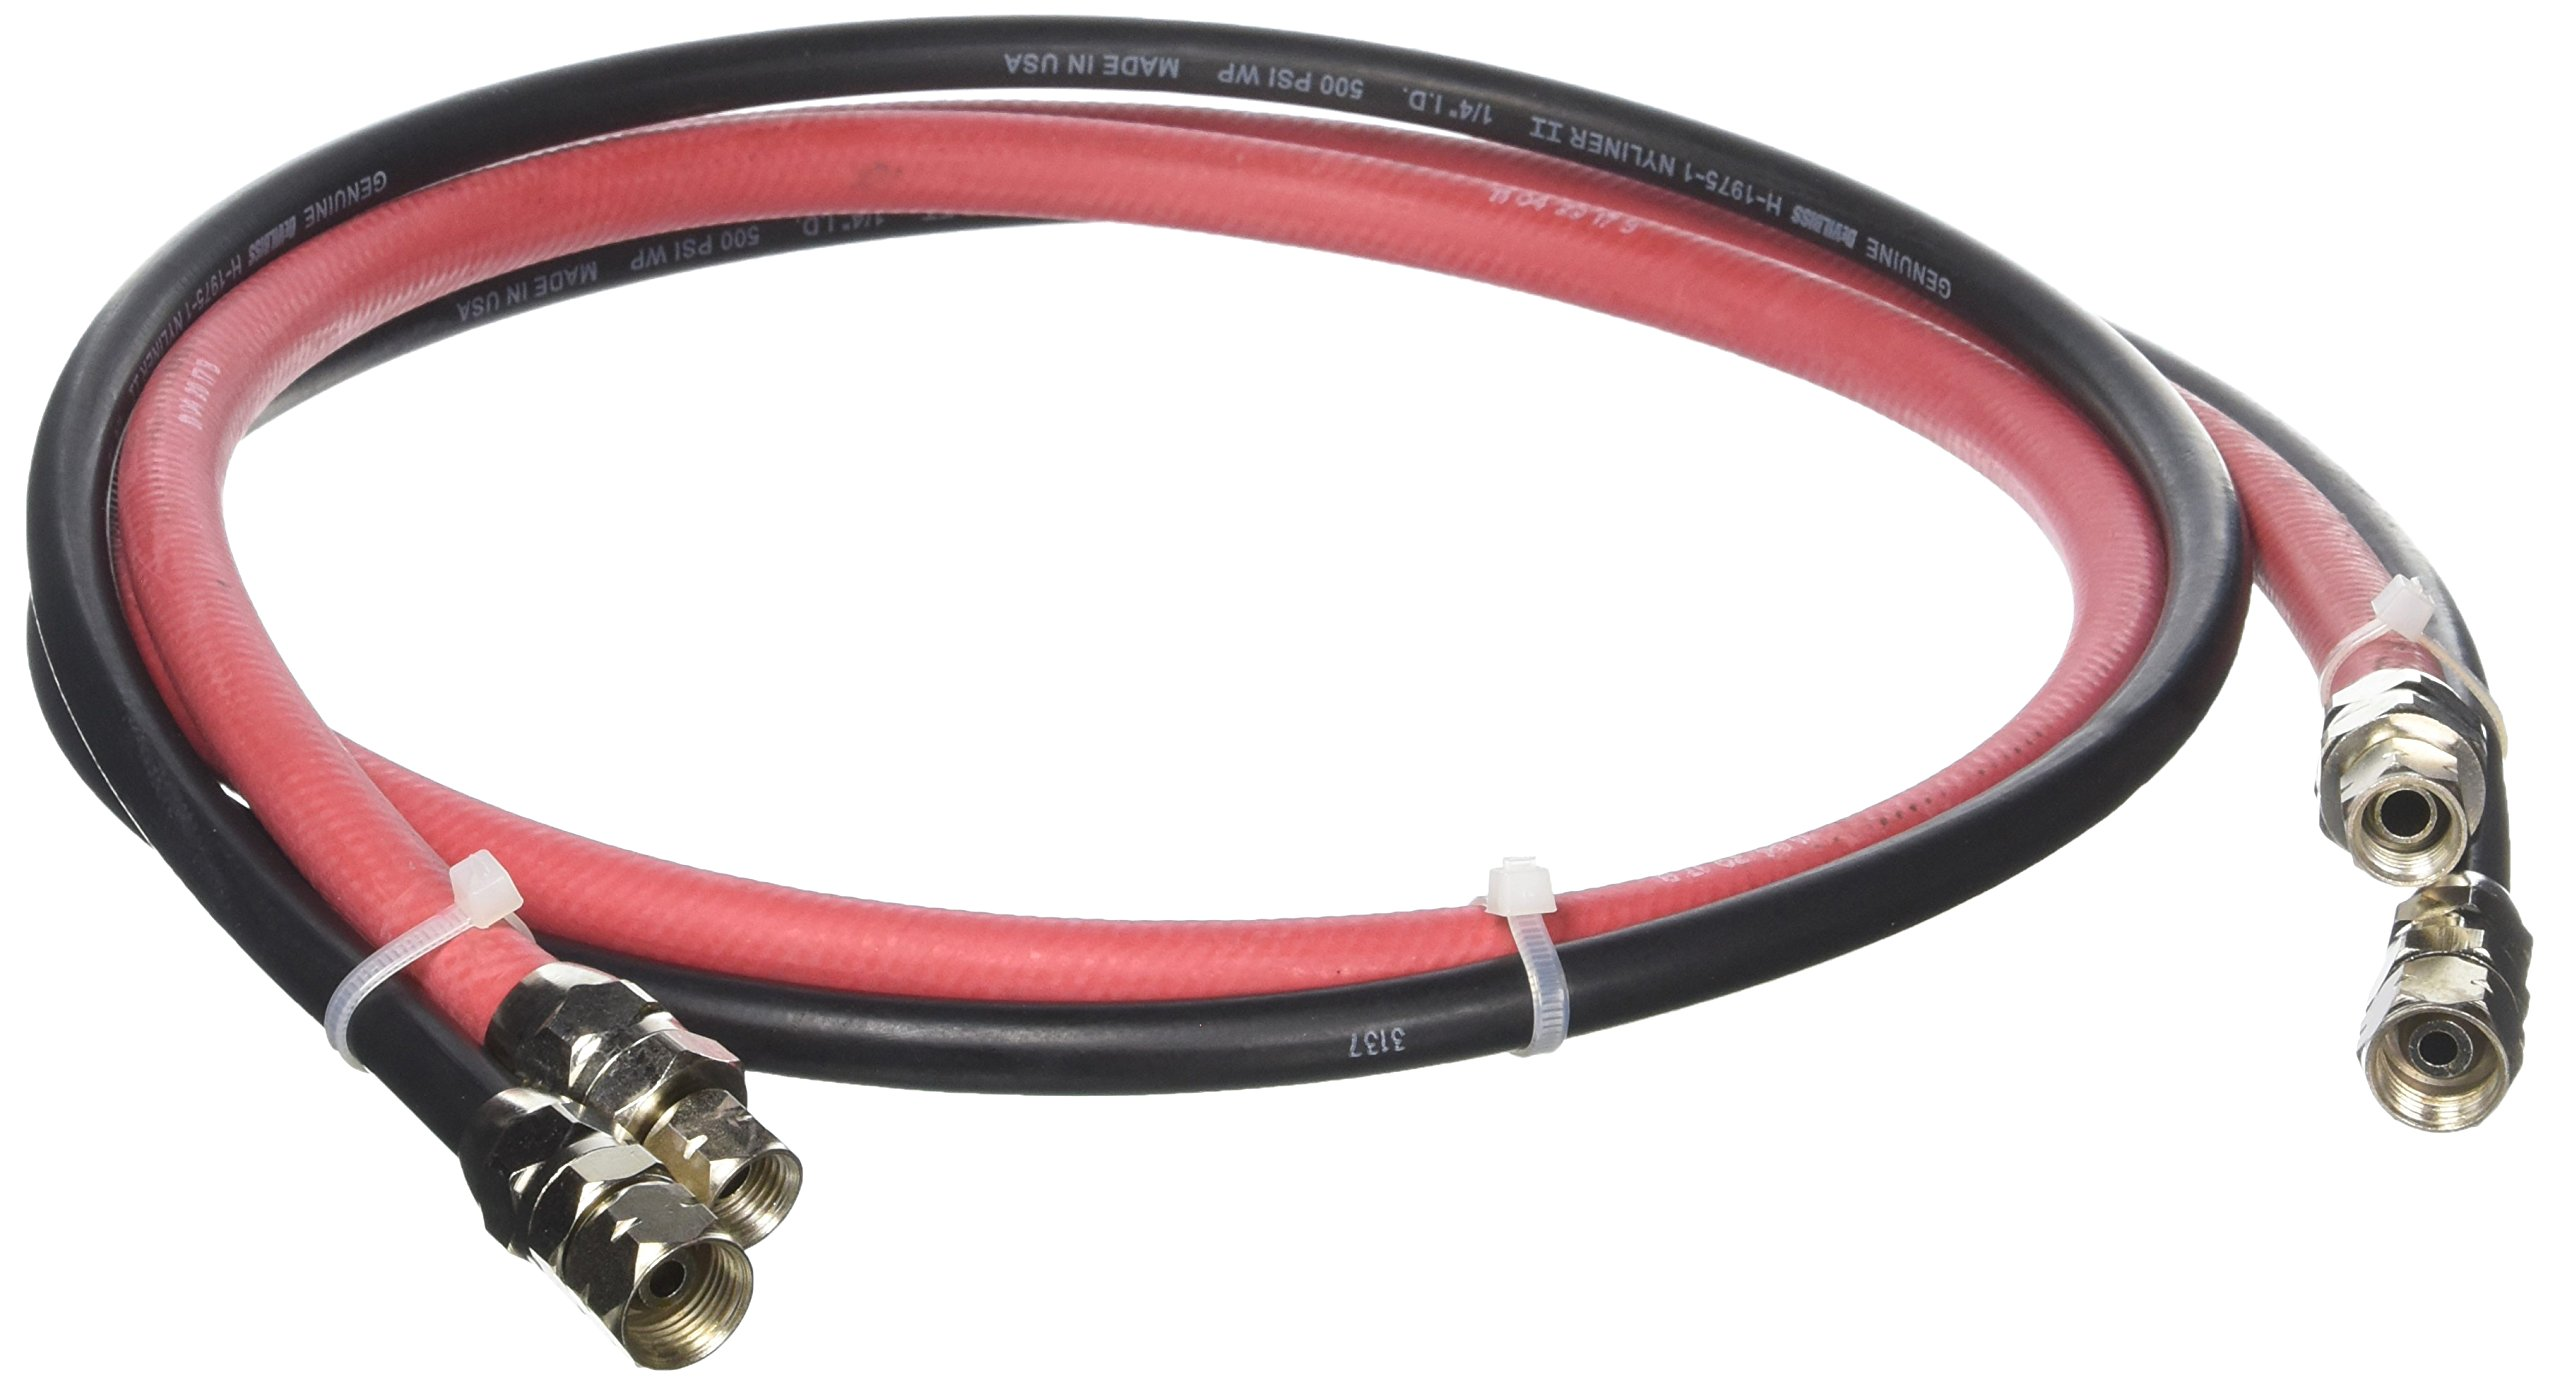 Devilbiss KB4006 Hose Assembly by Devilbiss